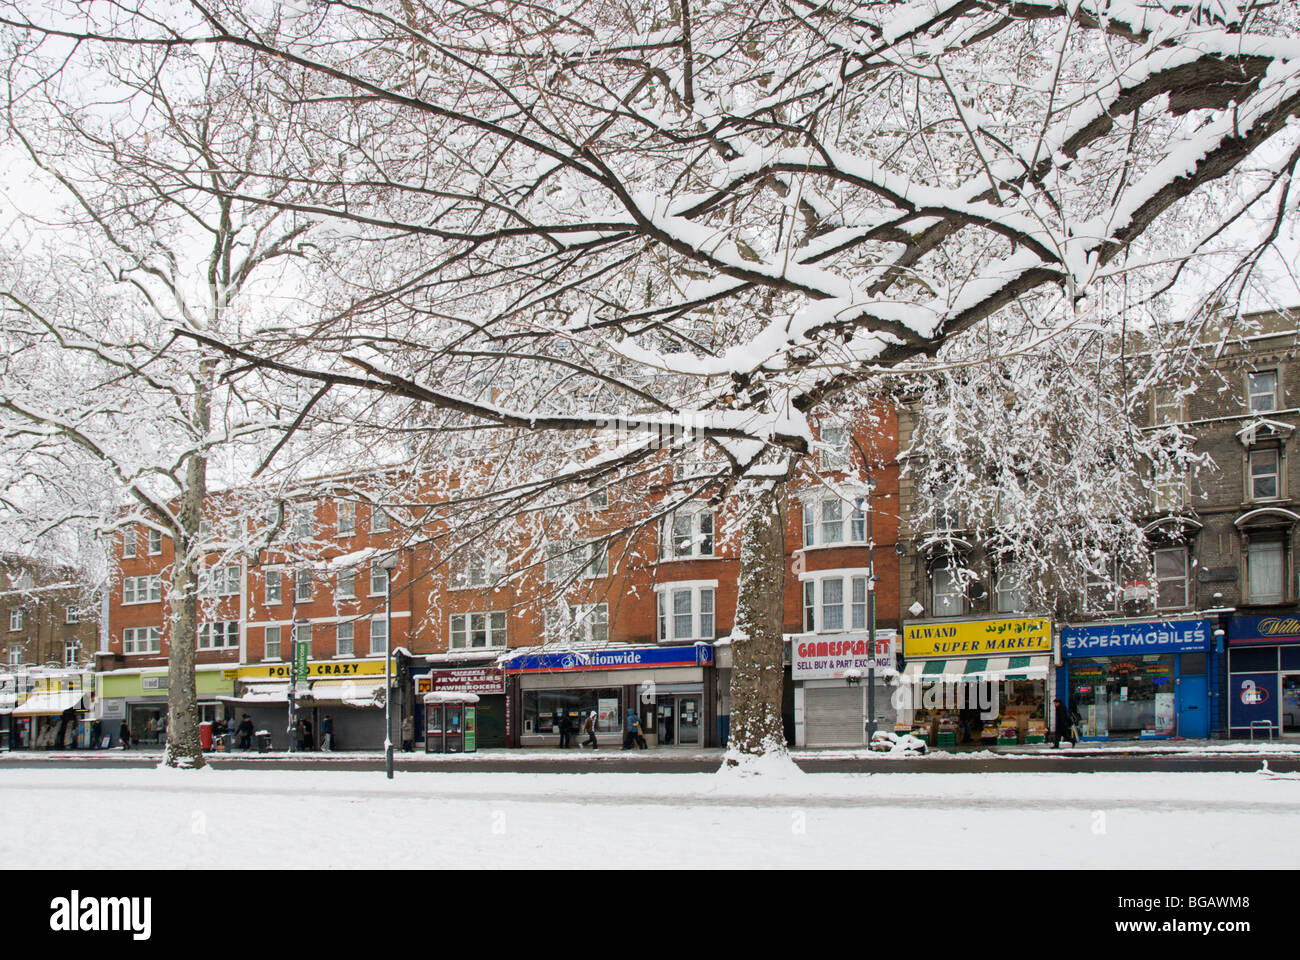 Snow covered street and branches of a tree in Shepherds Bush Green London England - Stock Image